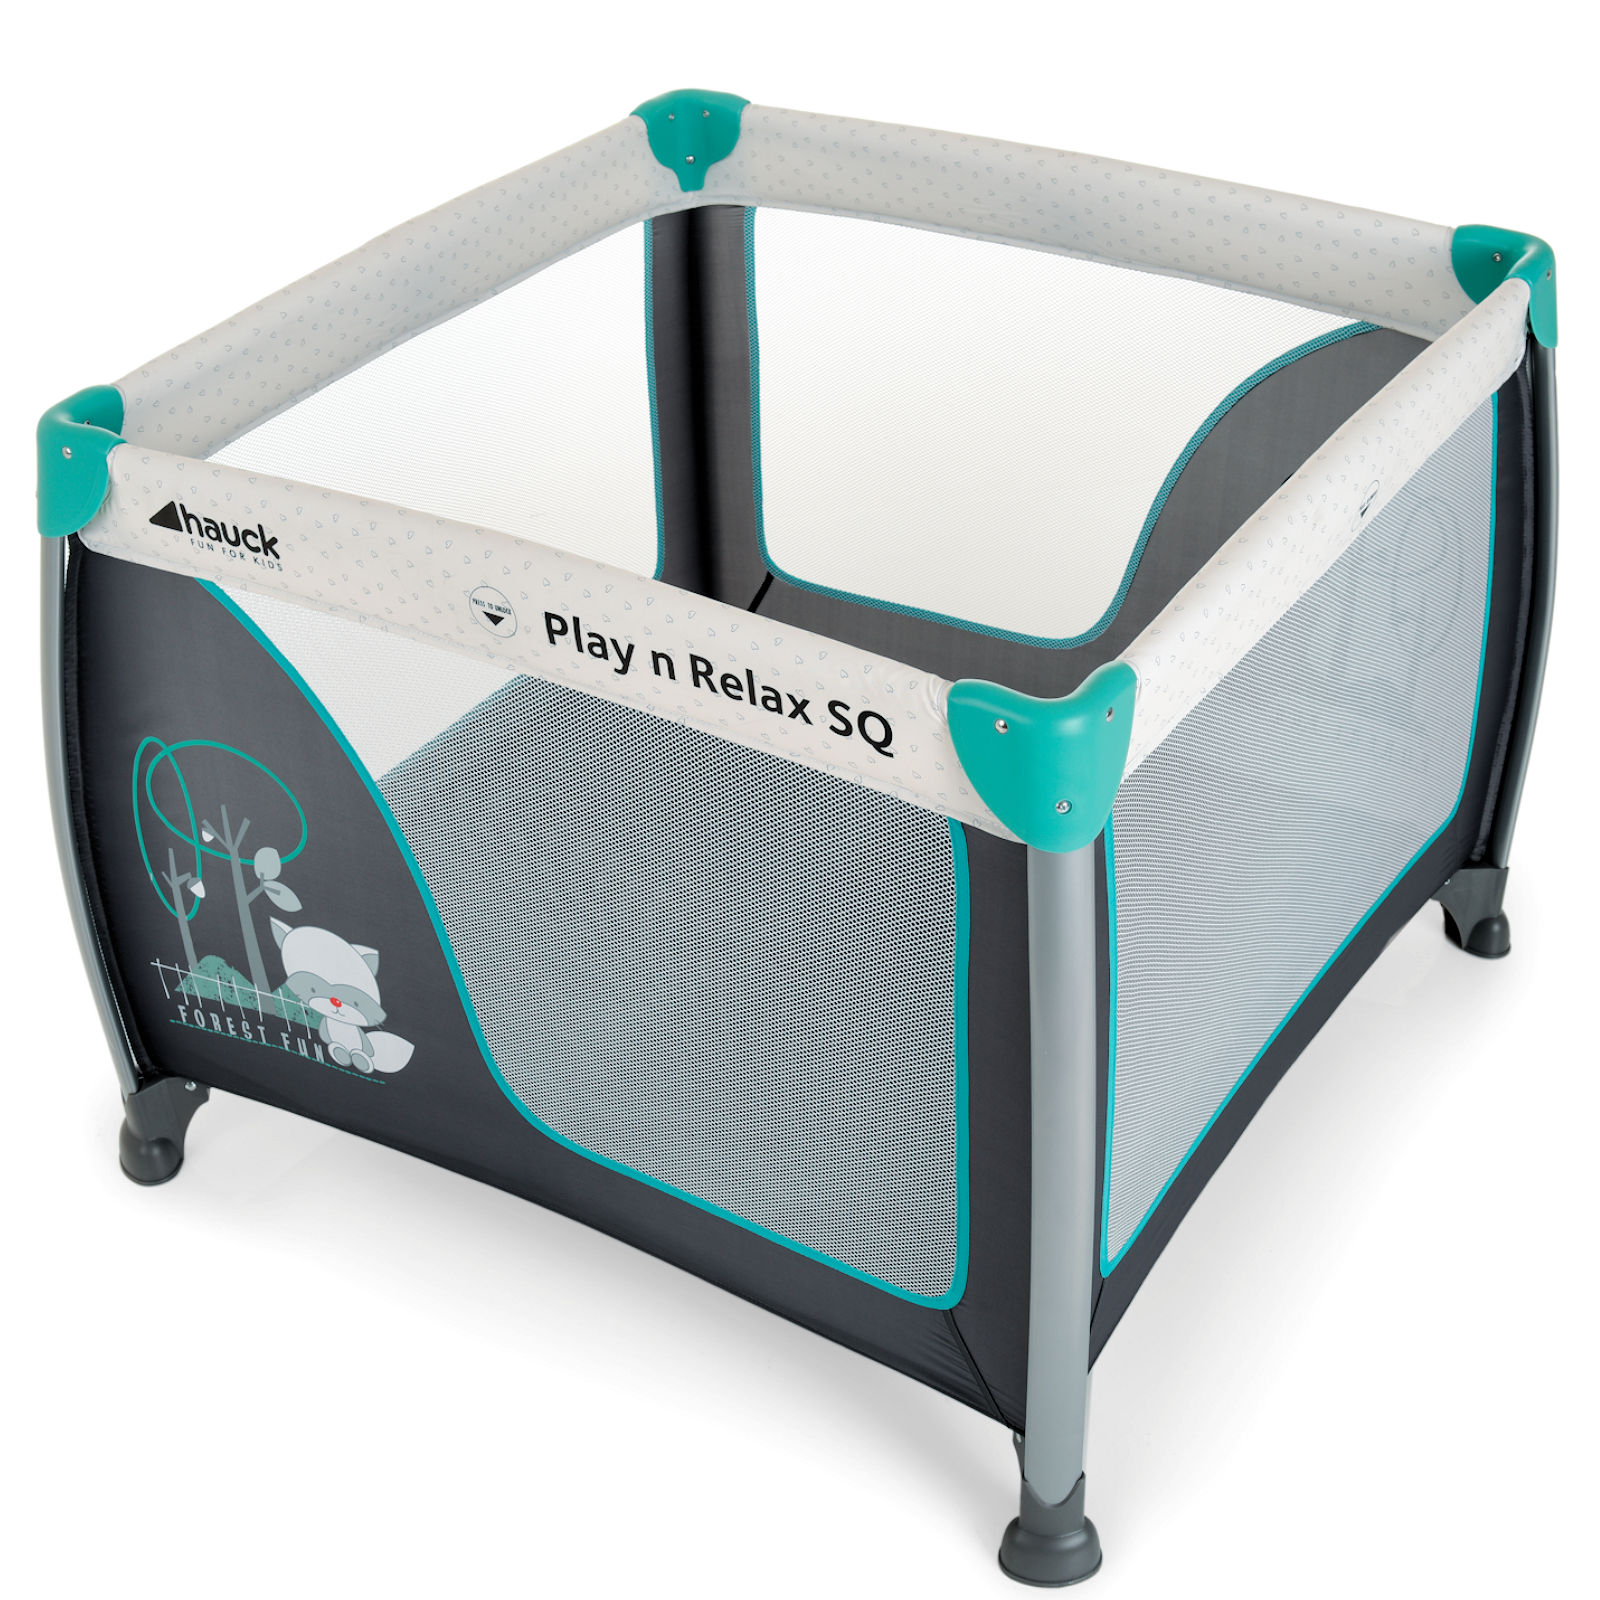 Hauck Play N Relax Large Square Travel Cot Playpen